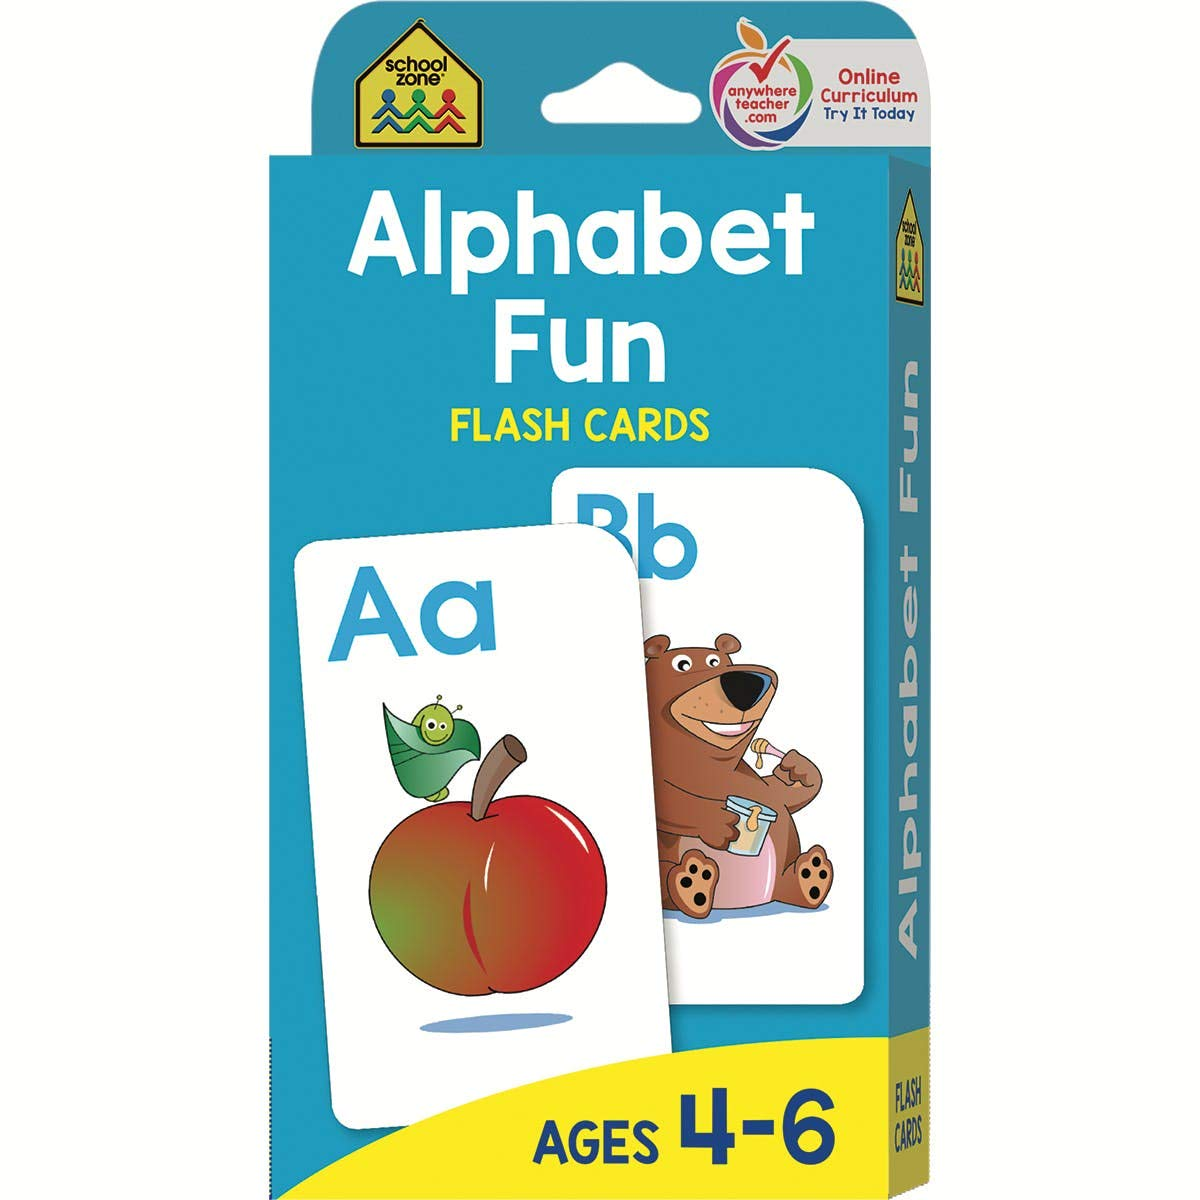 School Zone Publishing 2325991 DDI Flash Cards - Alphabet Fun - Case of 12 by School Zone